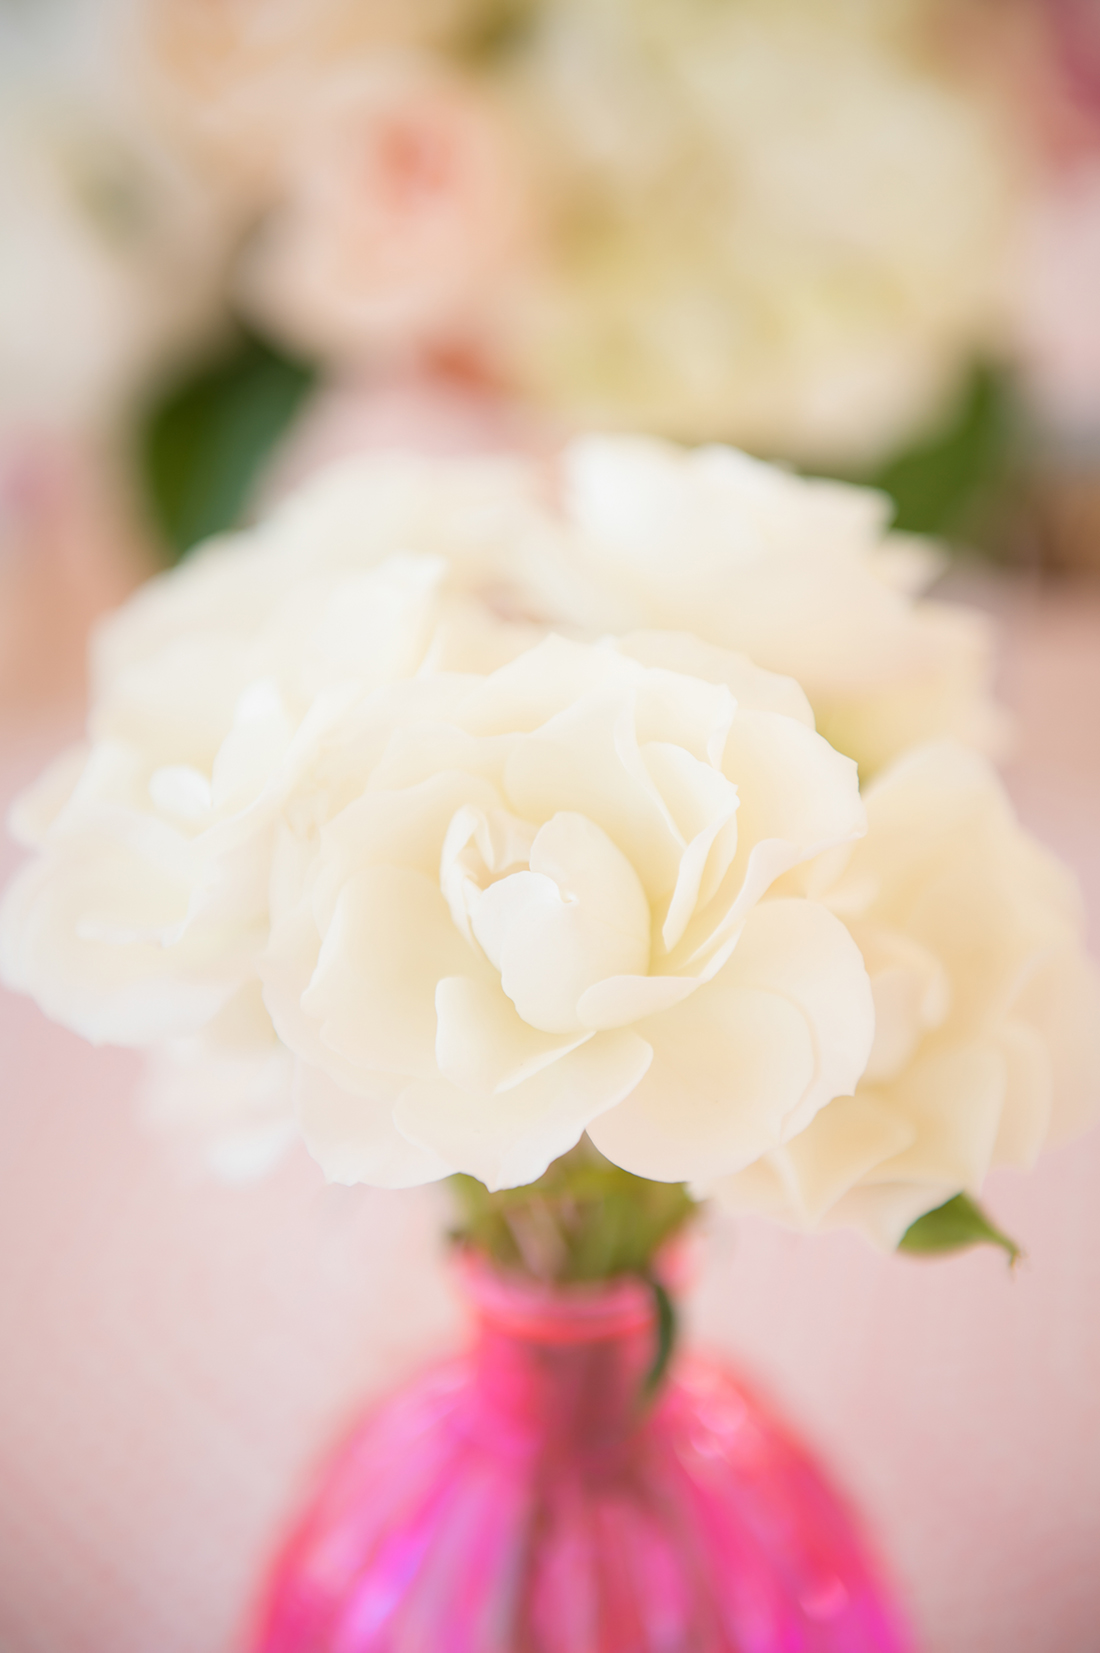 A close up image of a white roses for something lovely event